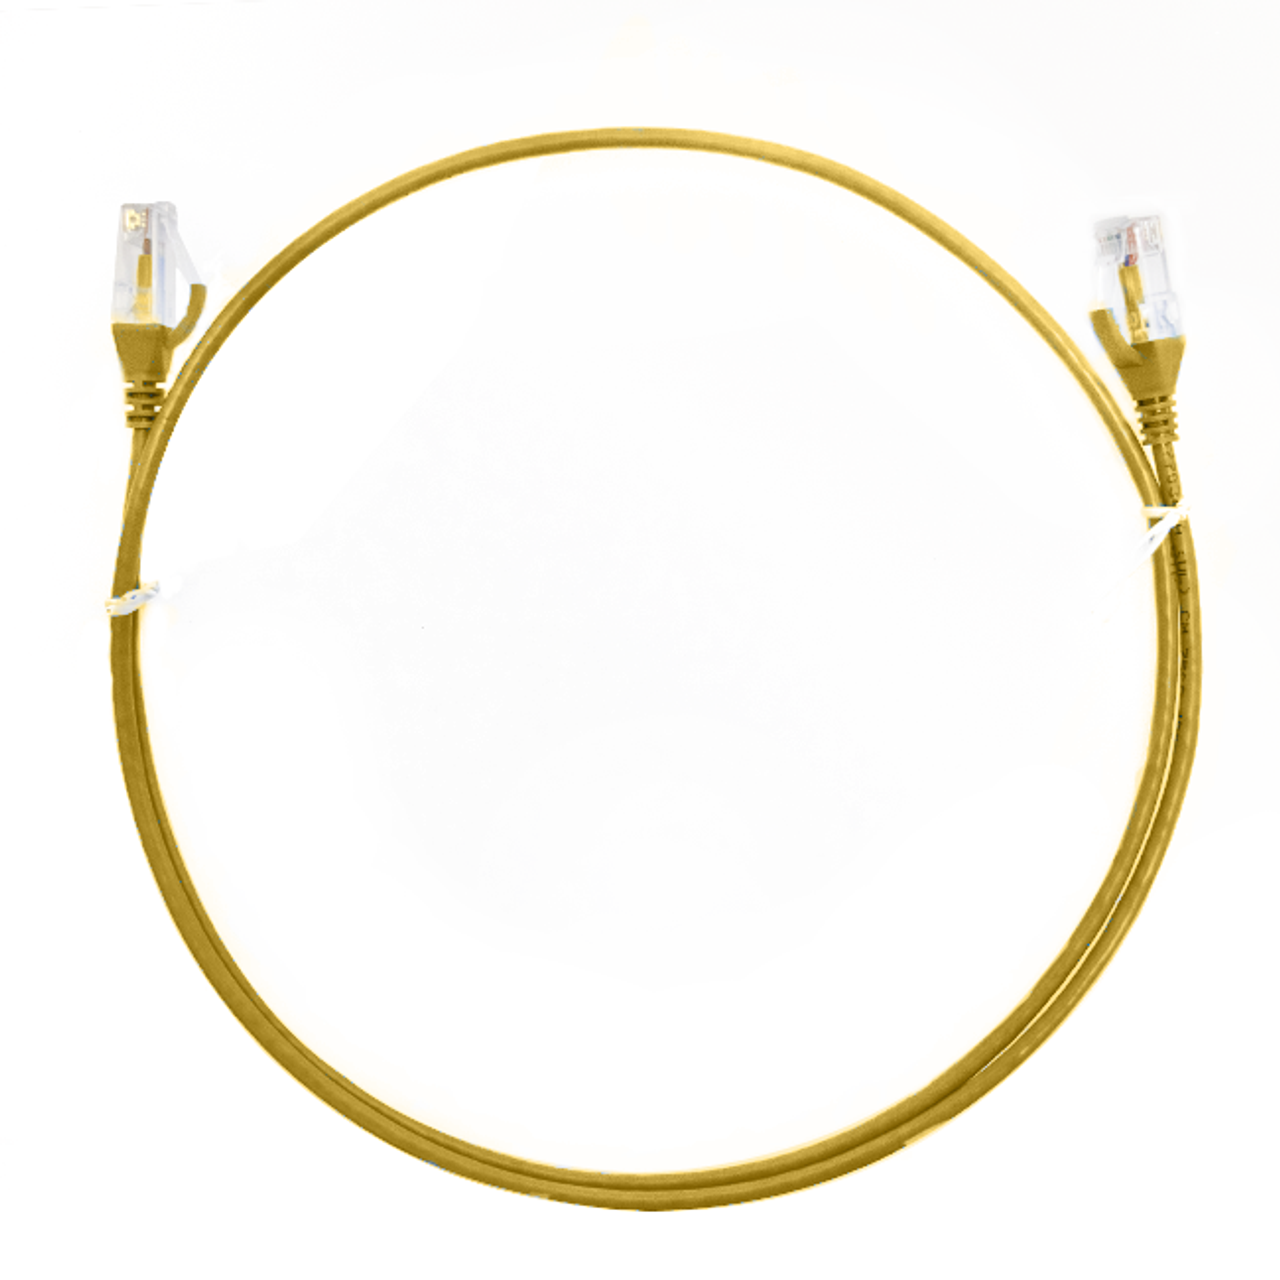 Image for 0.75m Cat 6 RJ45 RJ45 Ultra Thin LSZH Network Cables  : Yellow CX Computer Superstore